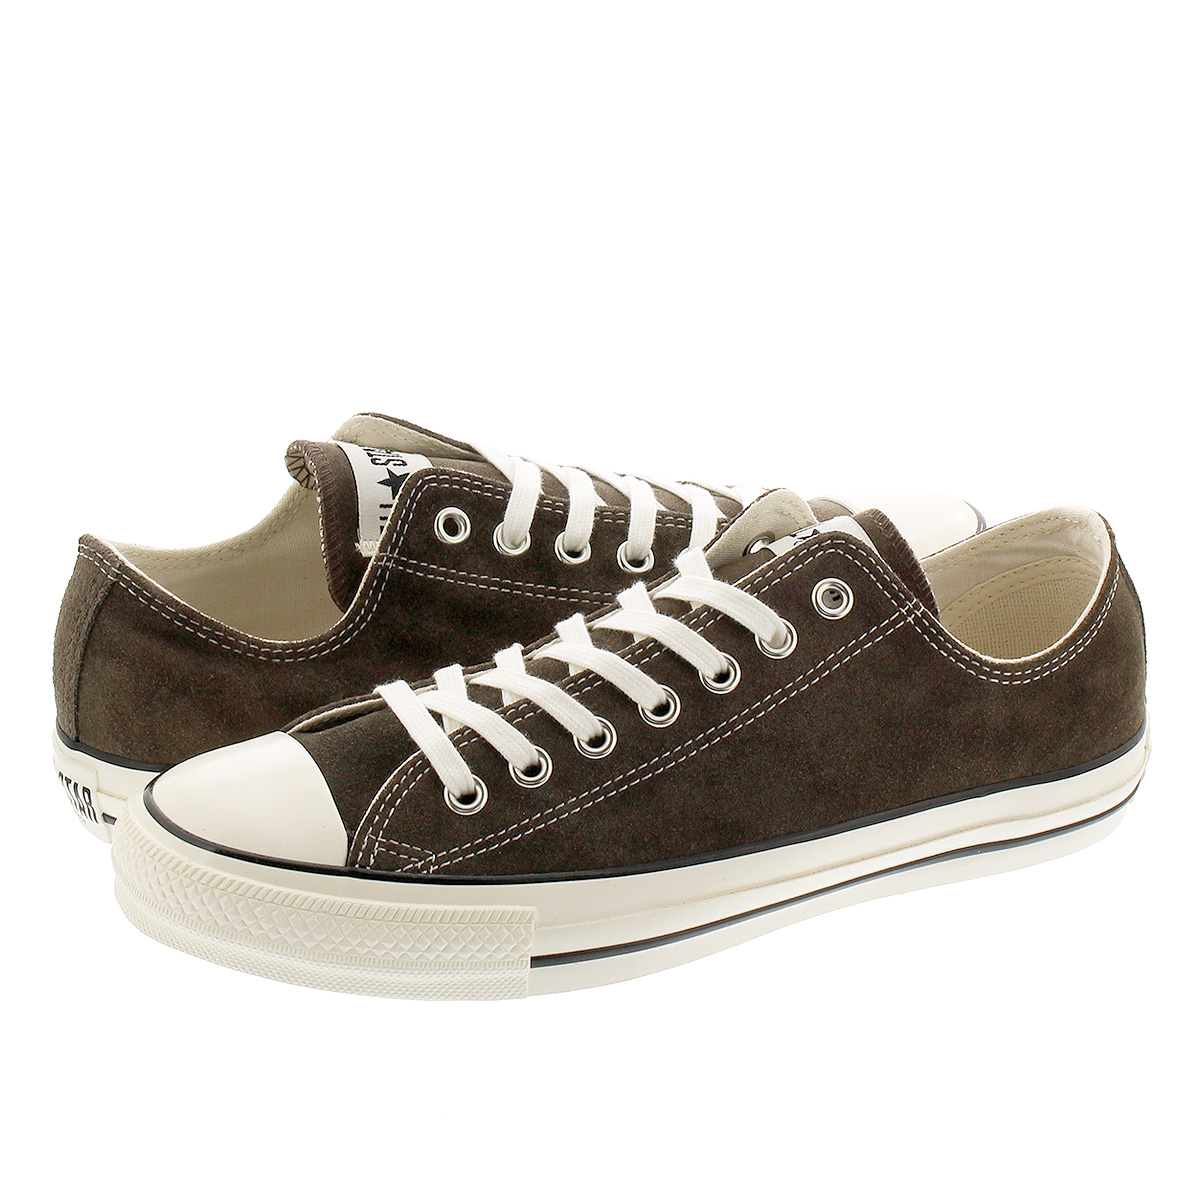 CONVERSE SUEDE ALL STAR US OX コンバース スエード オールスター US OX CHARCOAL 31302071